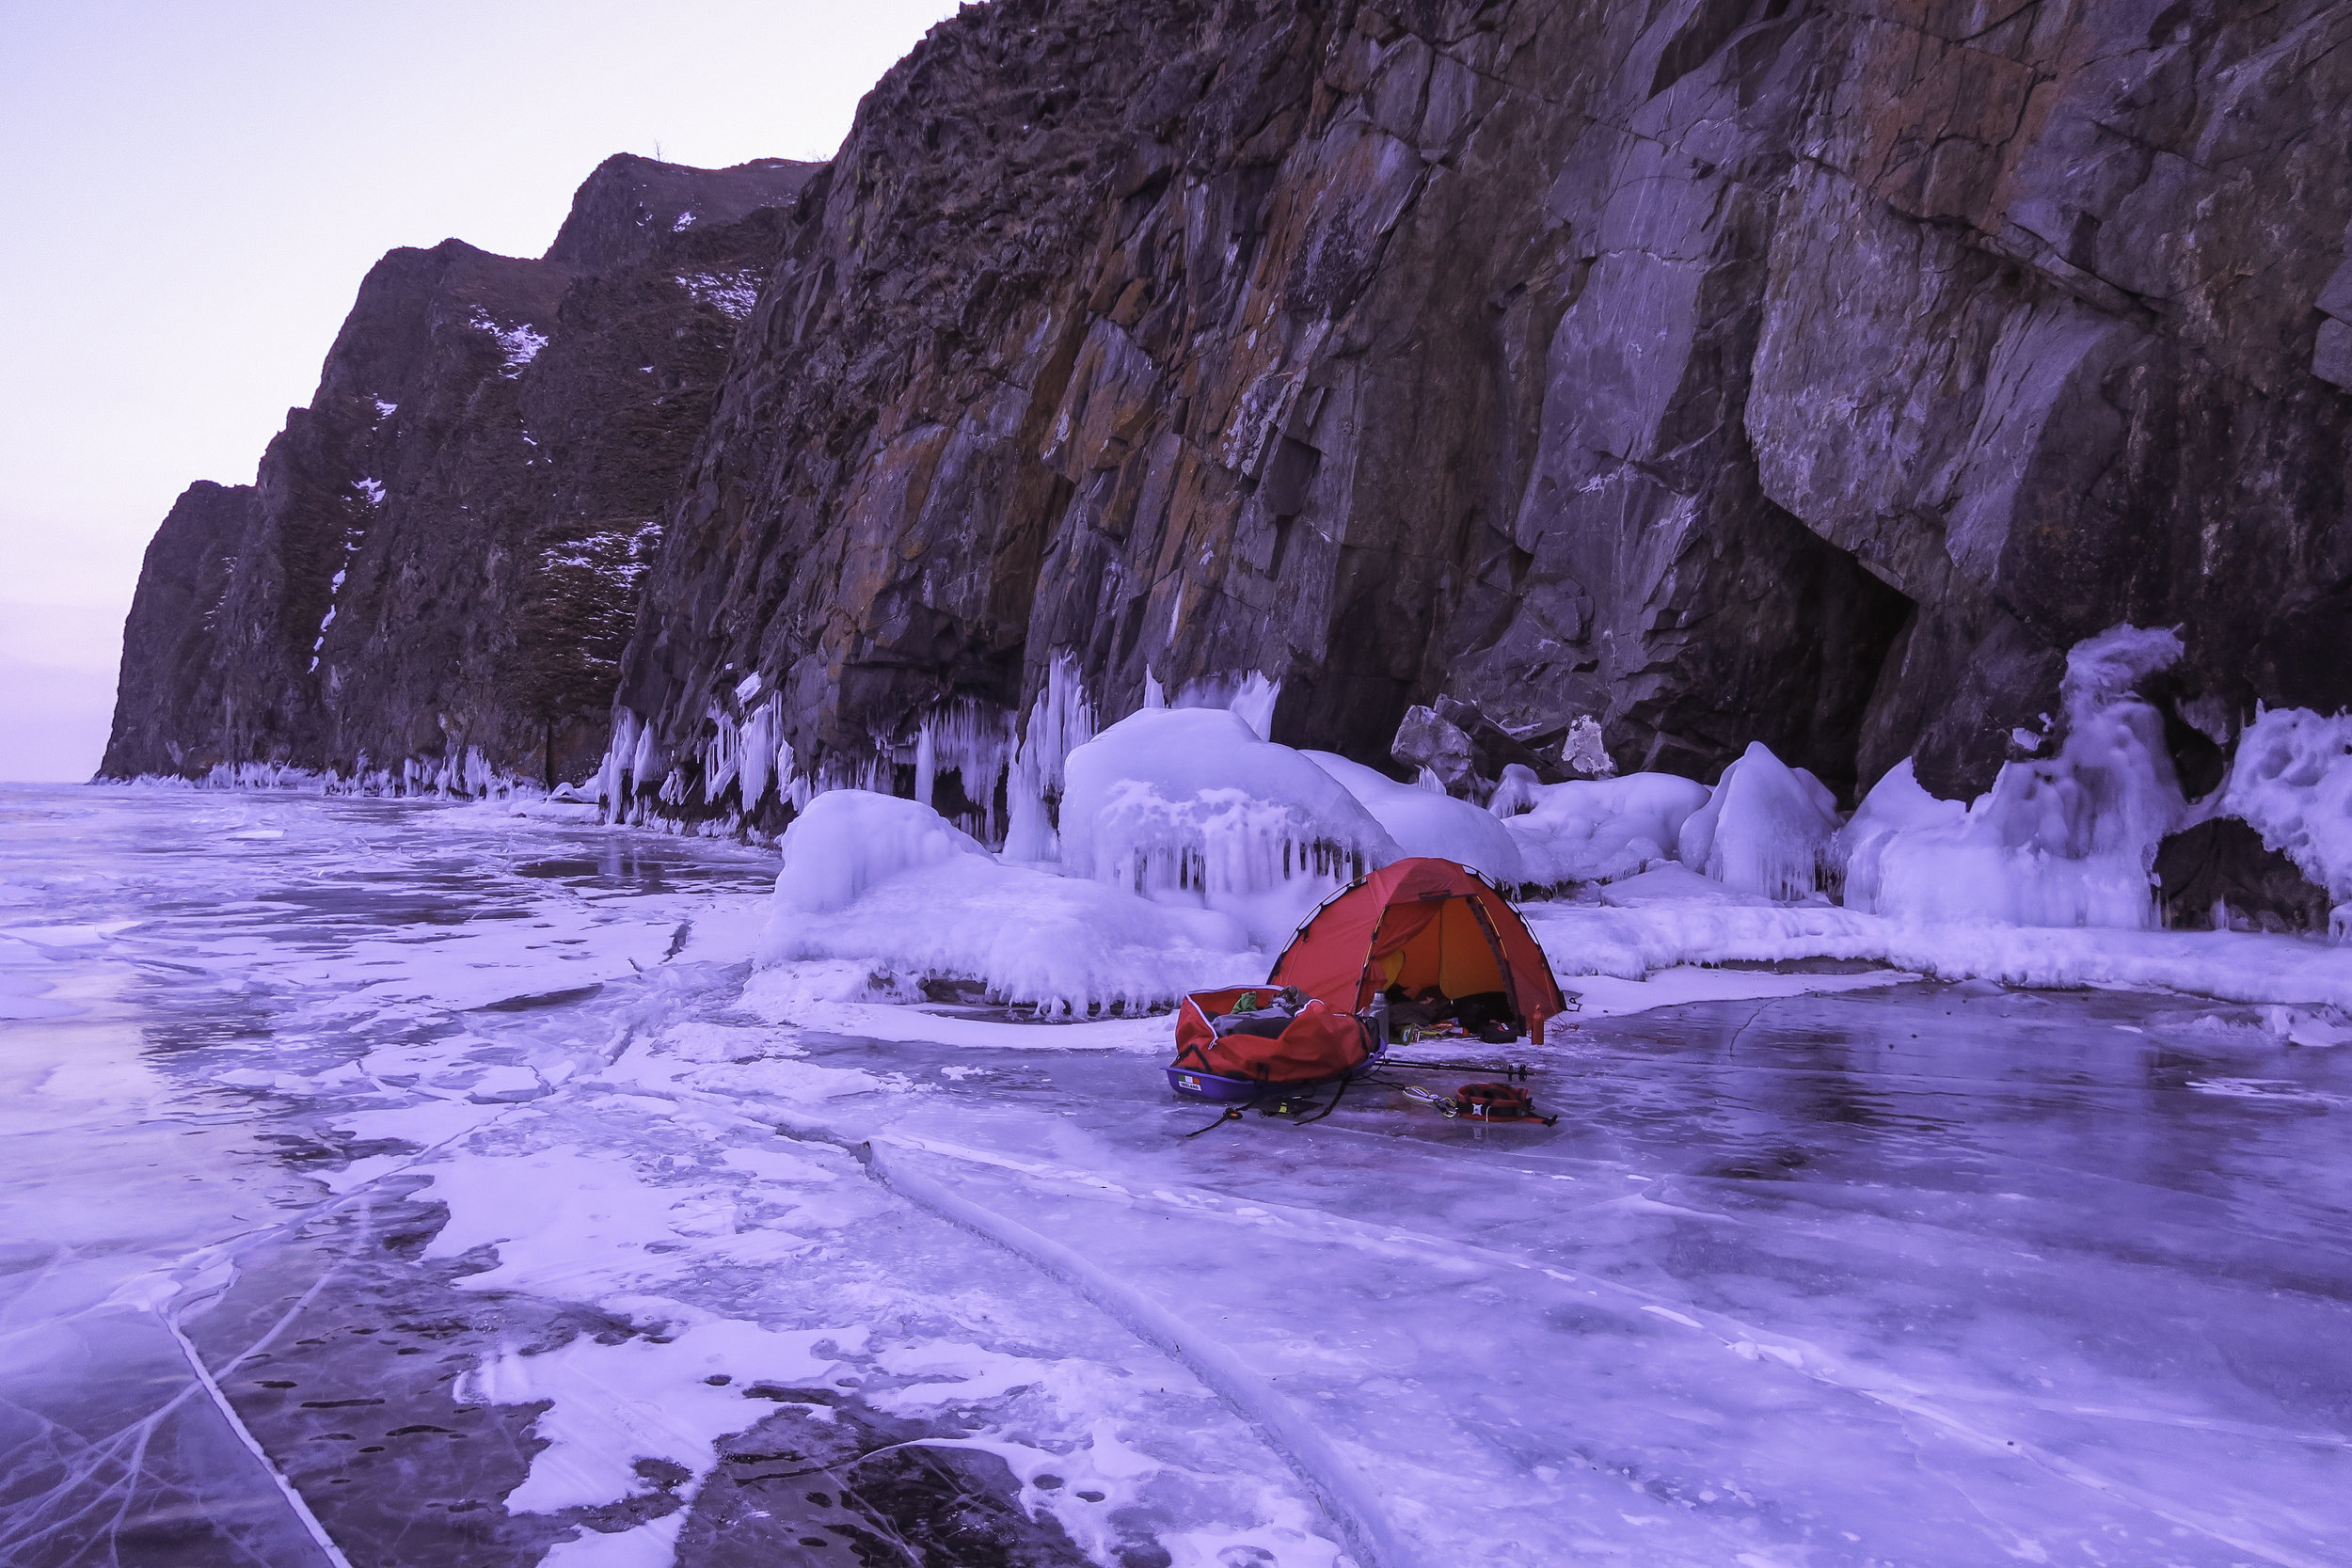 Typical Lake Baikal camp site, this night temps dropped to close to -40c